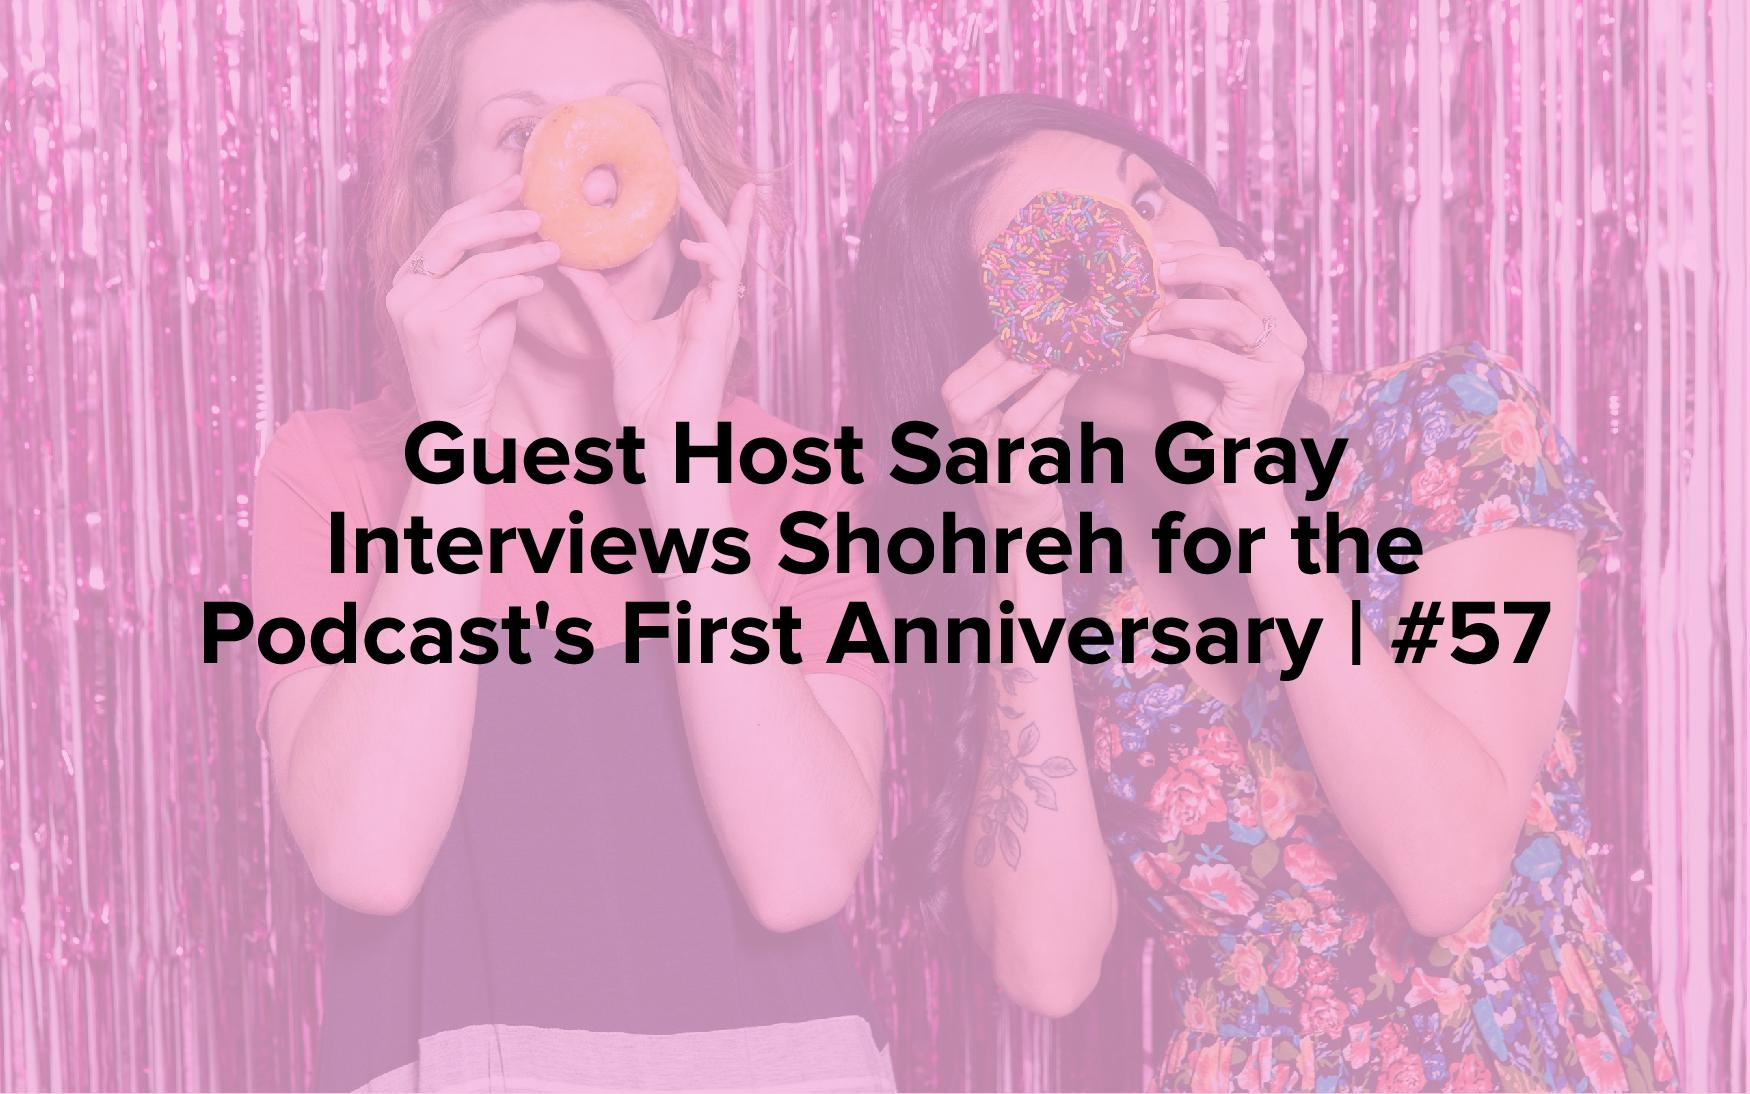 Guest Host Sarah Gray Interviews Shohreh for the Podcast's First Anniversary | #57